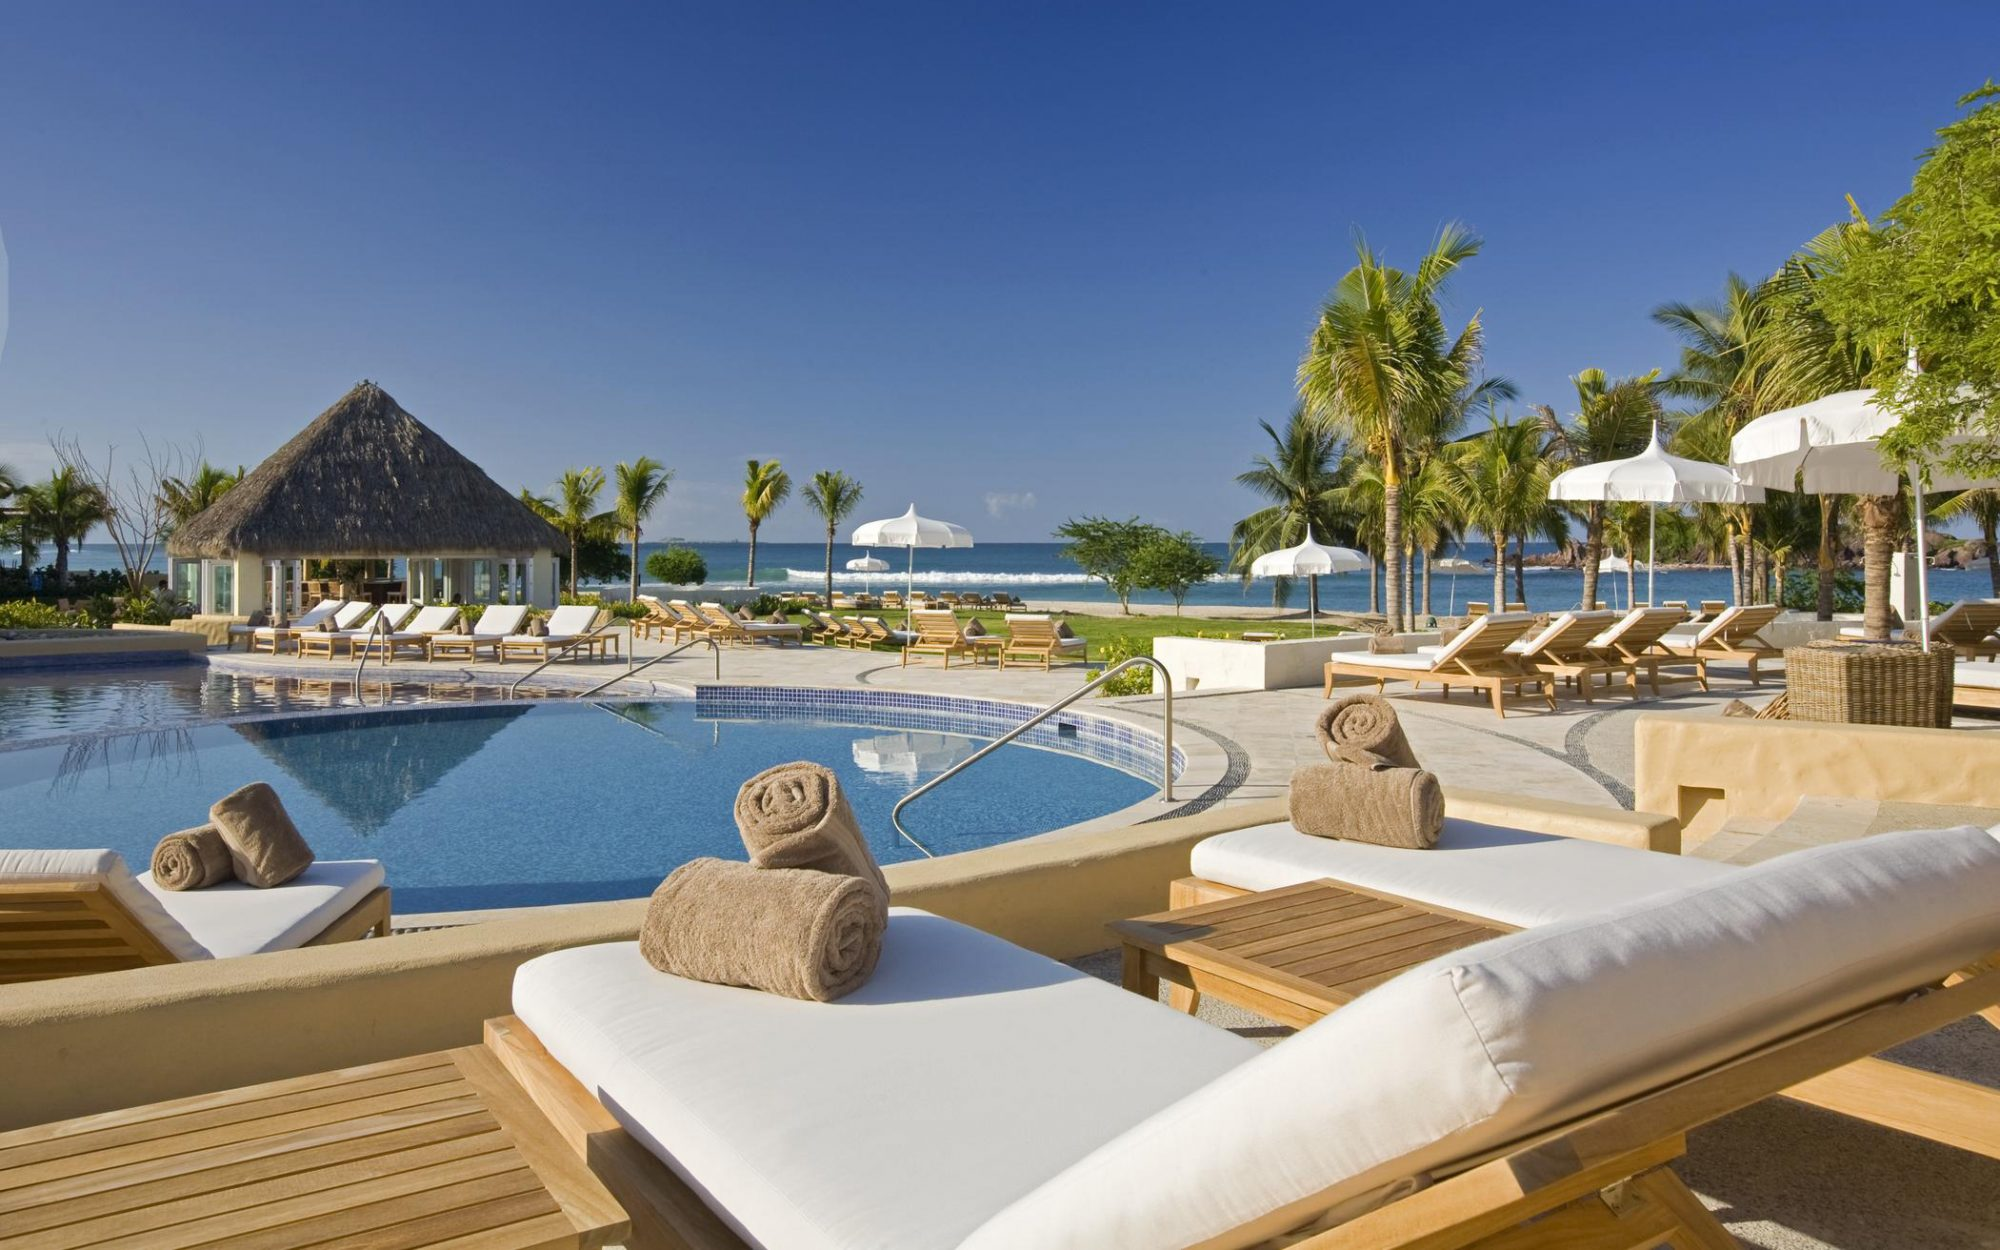 Best Family Beach Hotels: No. 18 St. Regis Punta Mita Resort, Mexico